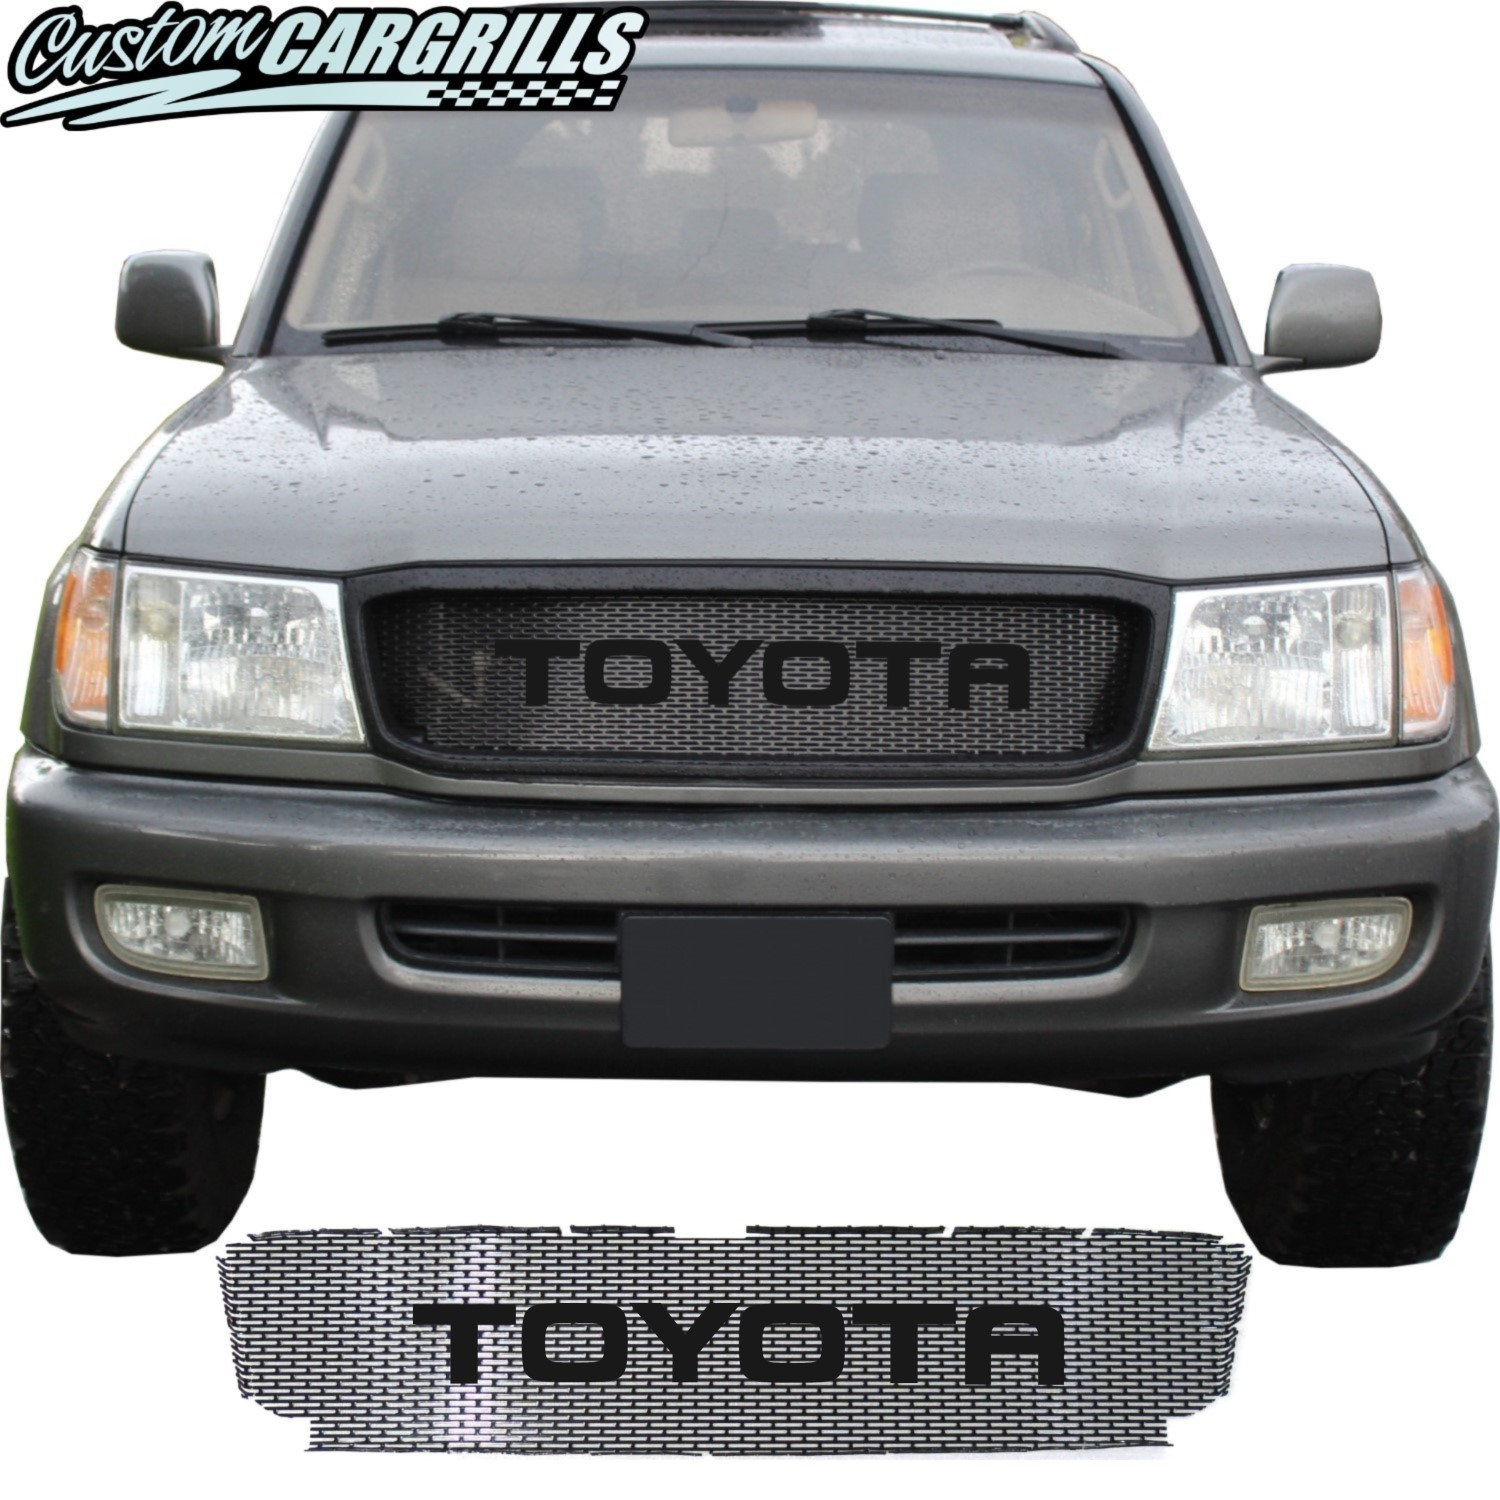 1998 - 2002 Toyota Land Cruiser Series 100 Grill Mesh and Big Letters